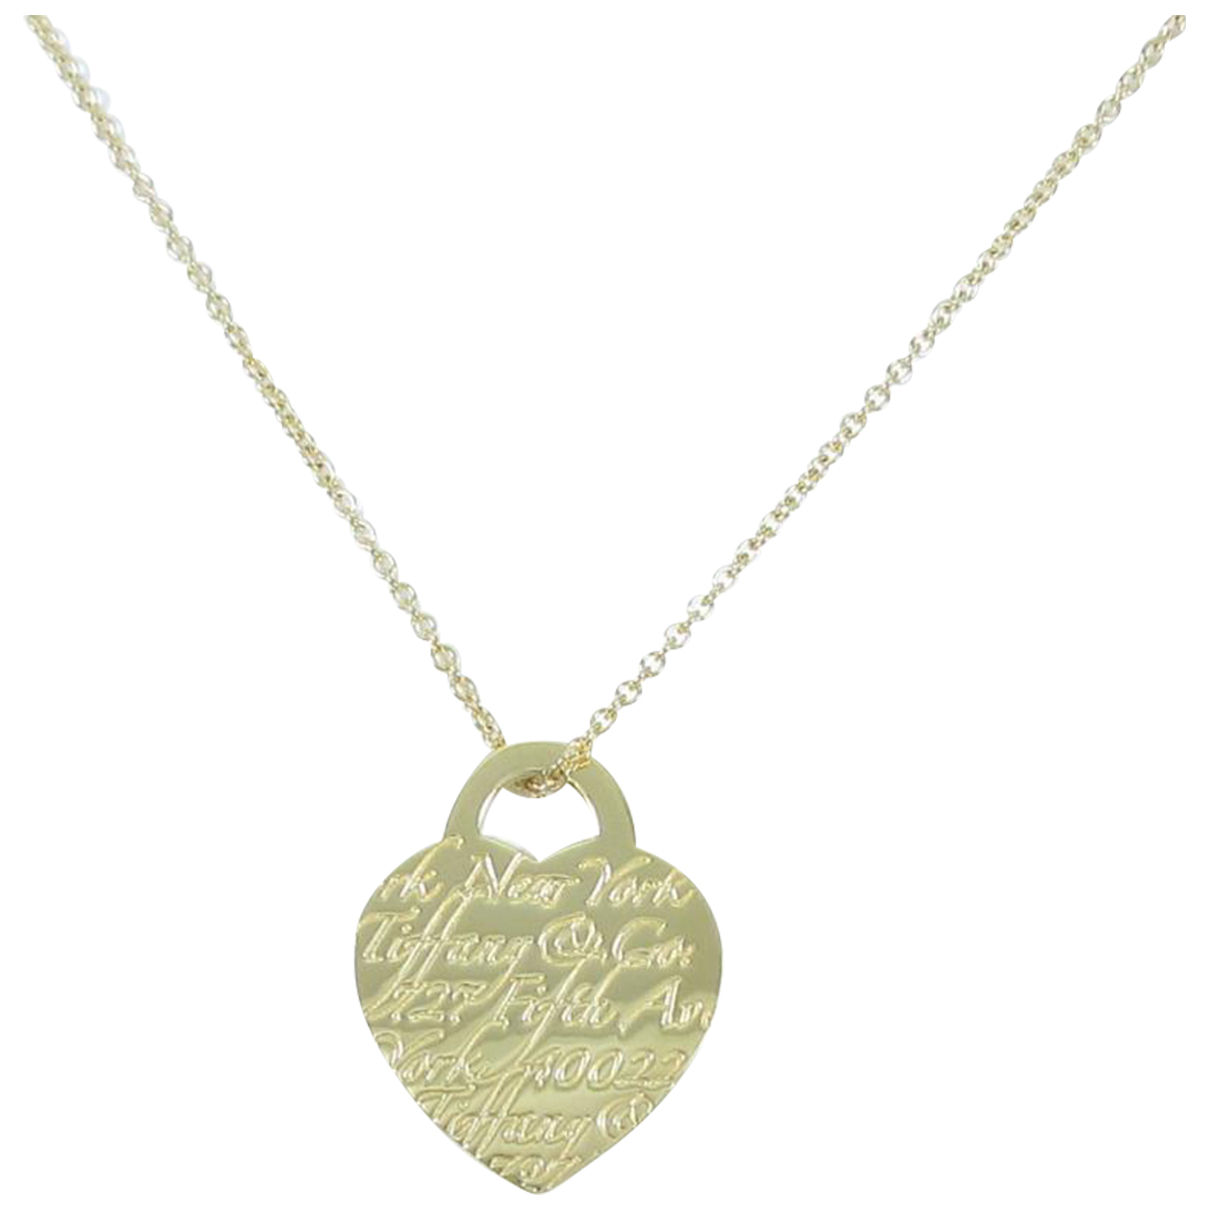 Tiffany & Co - Collier Return to Tiffany pour femme en or jaune - dore